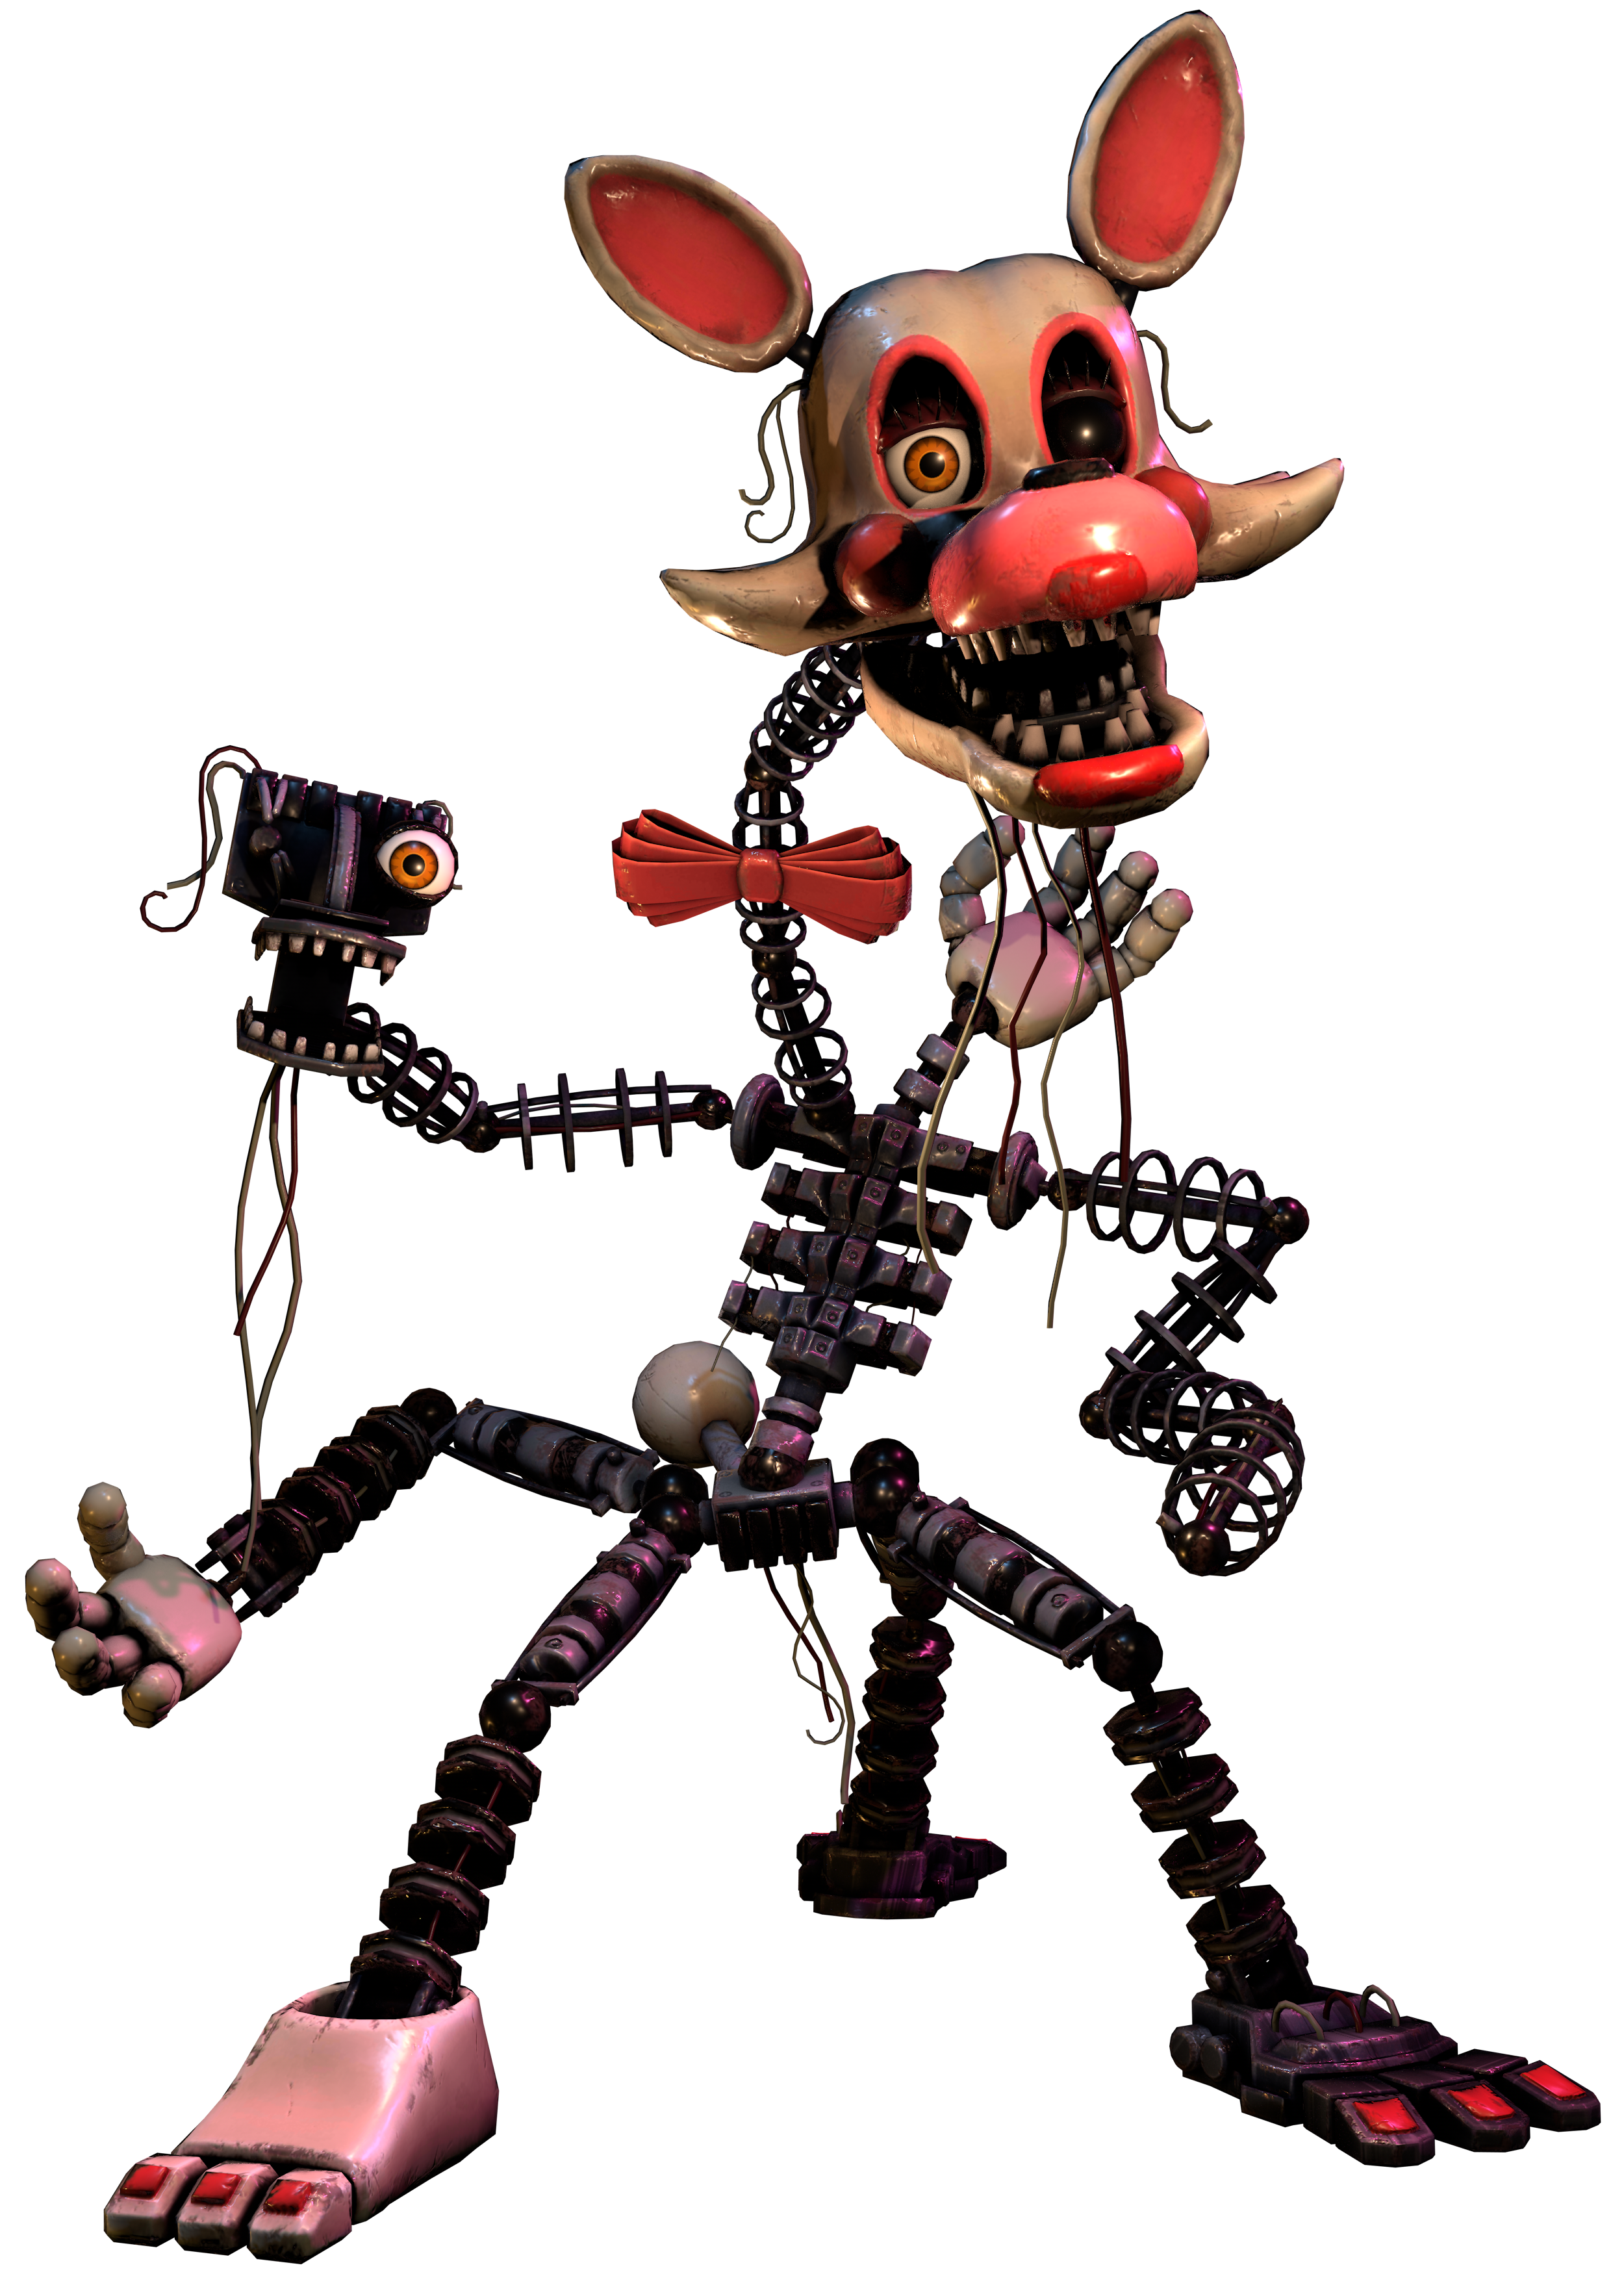 Mangle | Triple A Fazbear Wiki | Fandom